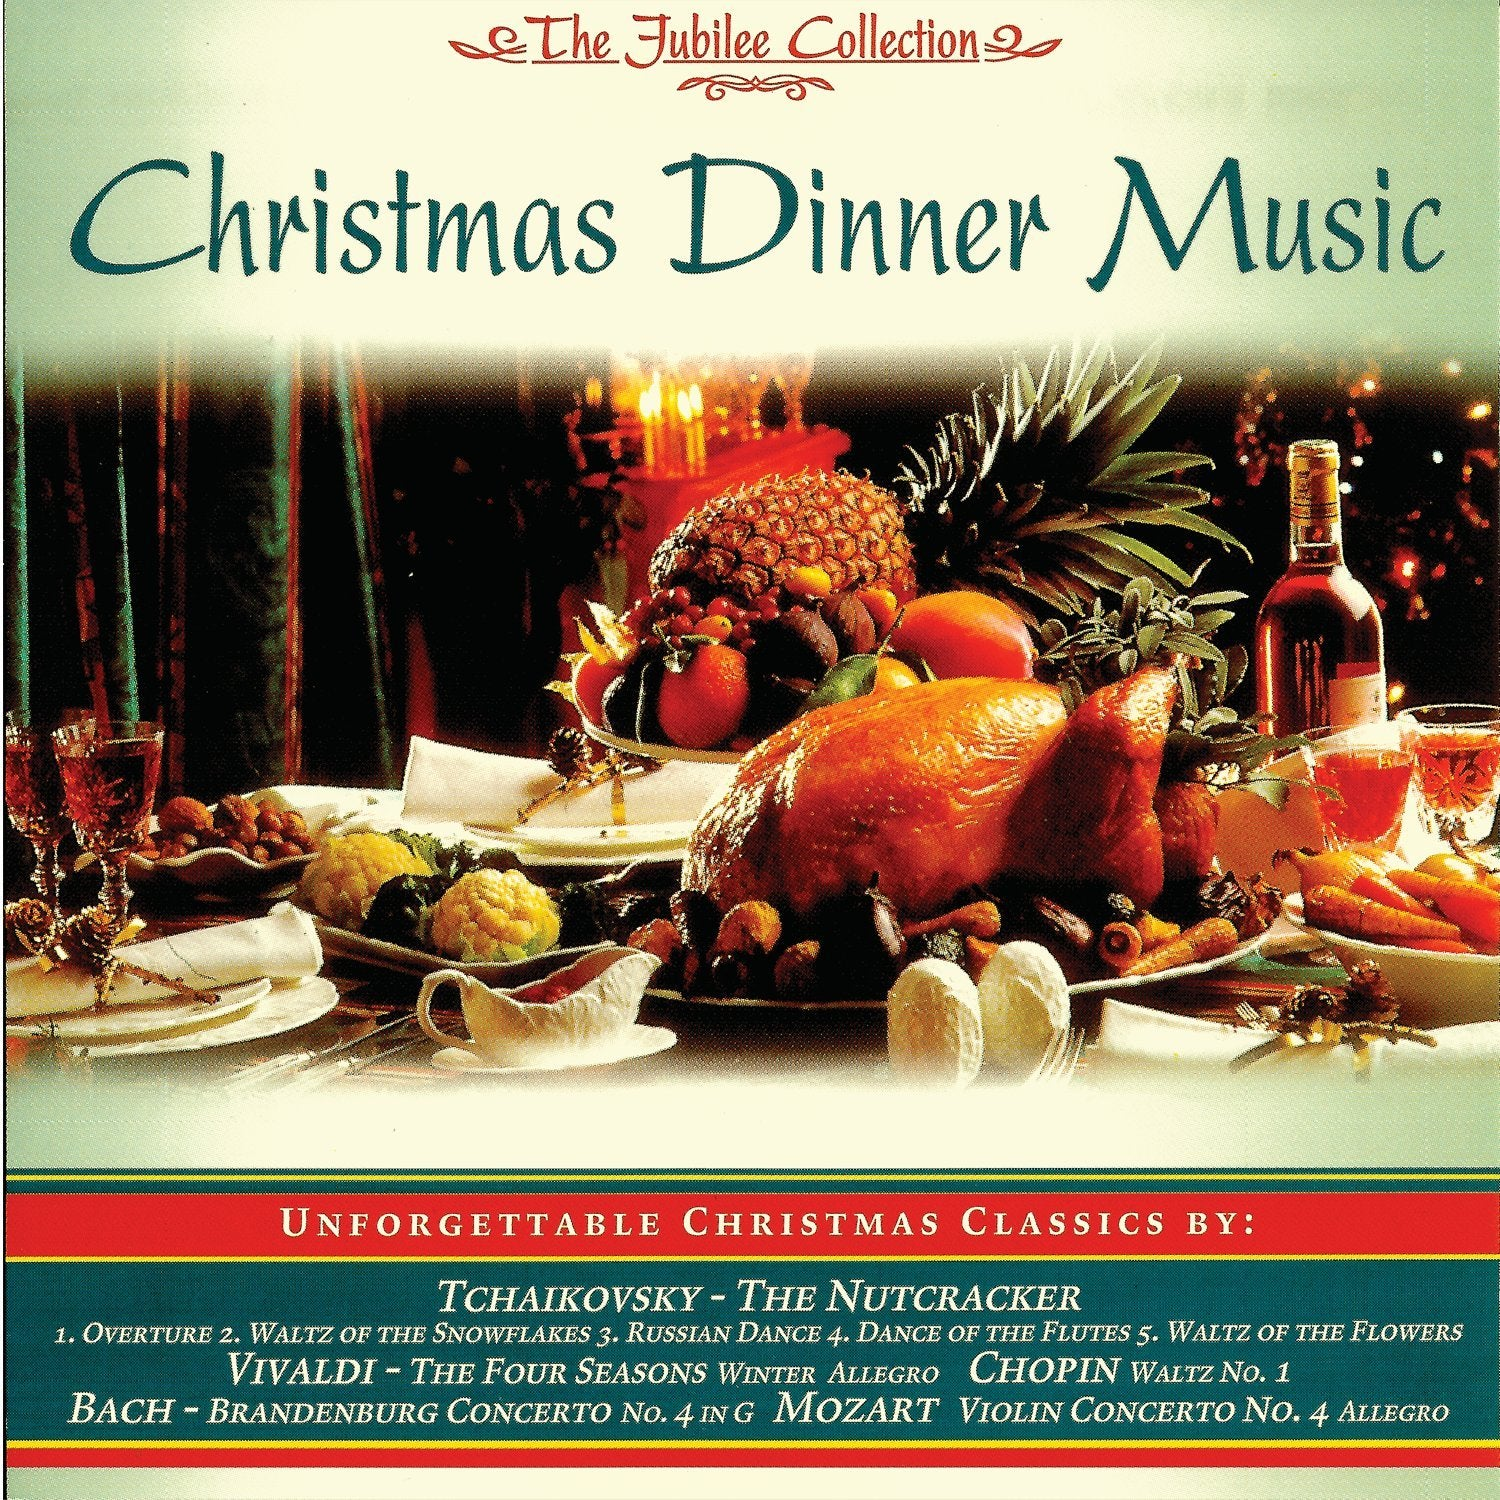 Christmas Dinner Music [Audio CD] Christmas Dinner Music